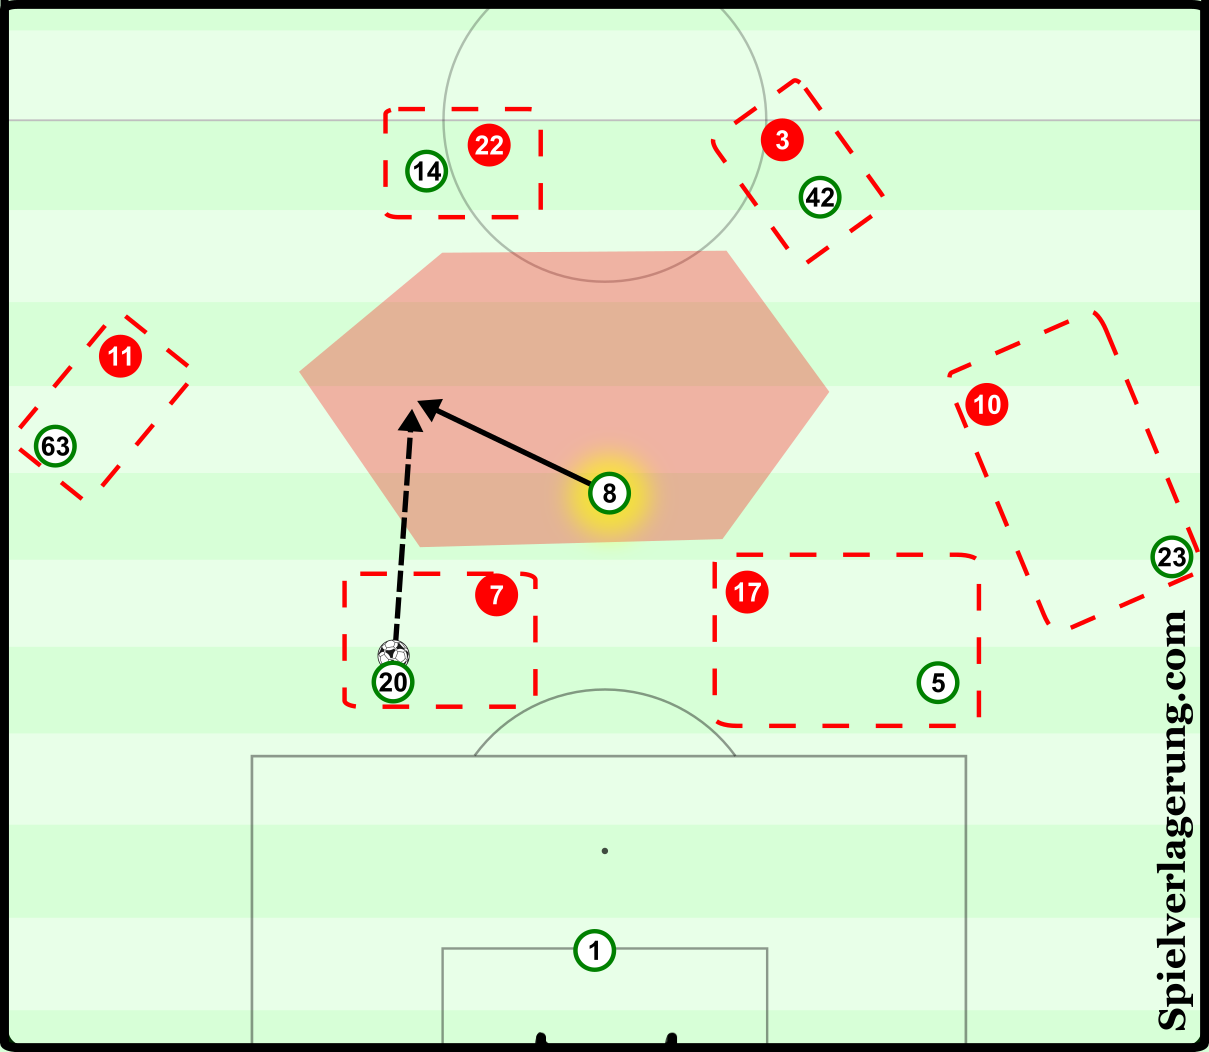 Aberdeen's initial pressing of the Celtic back line was easily broken, as Brown was left free by the spacing of his teammates to receive centrally. He is in such space that Boyata can pass into space to avoid the cover shadow of McLean.